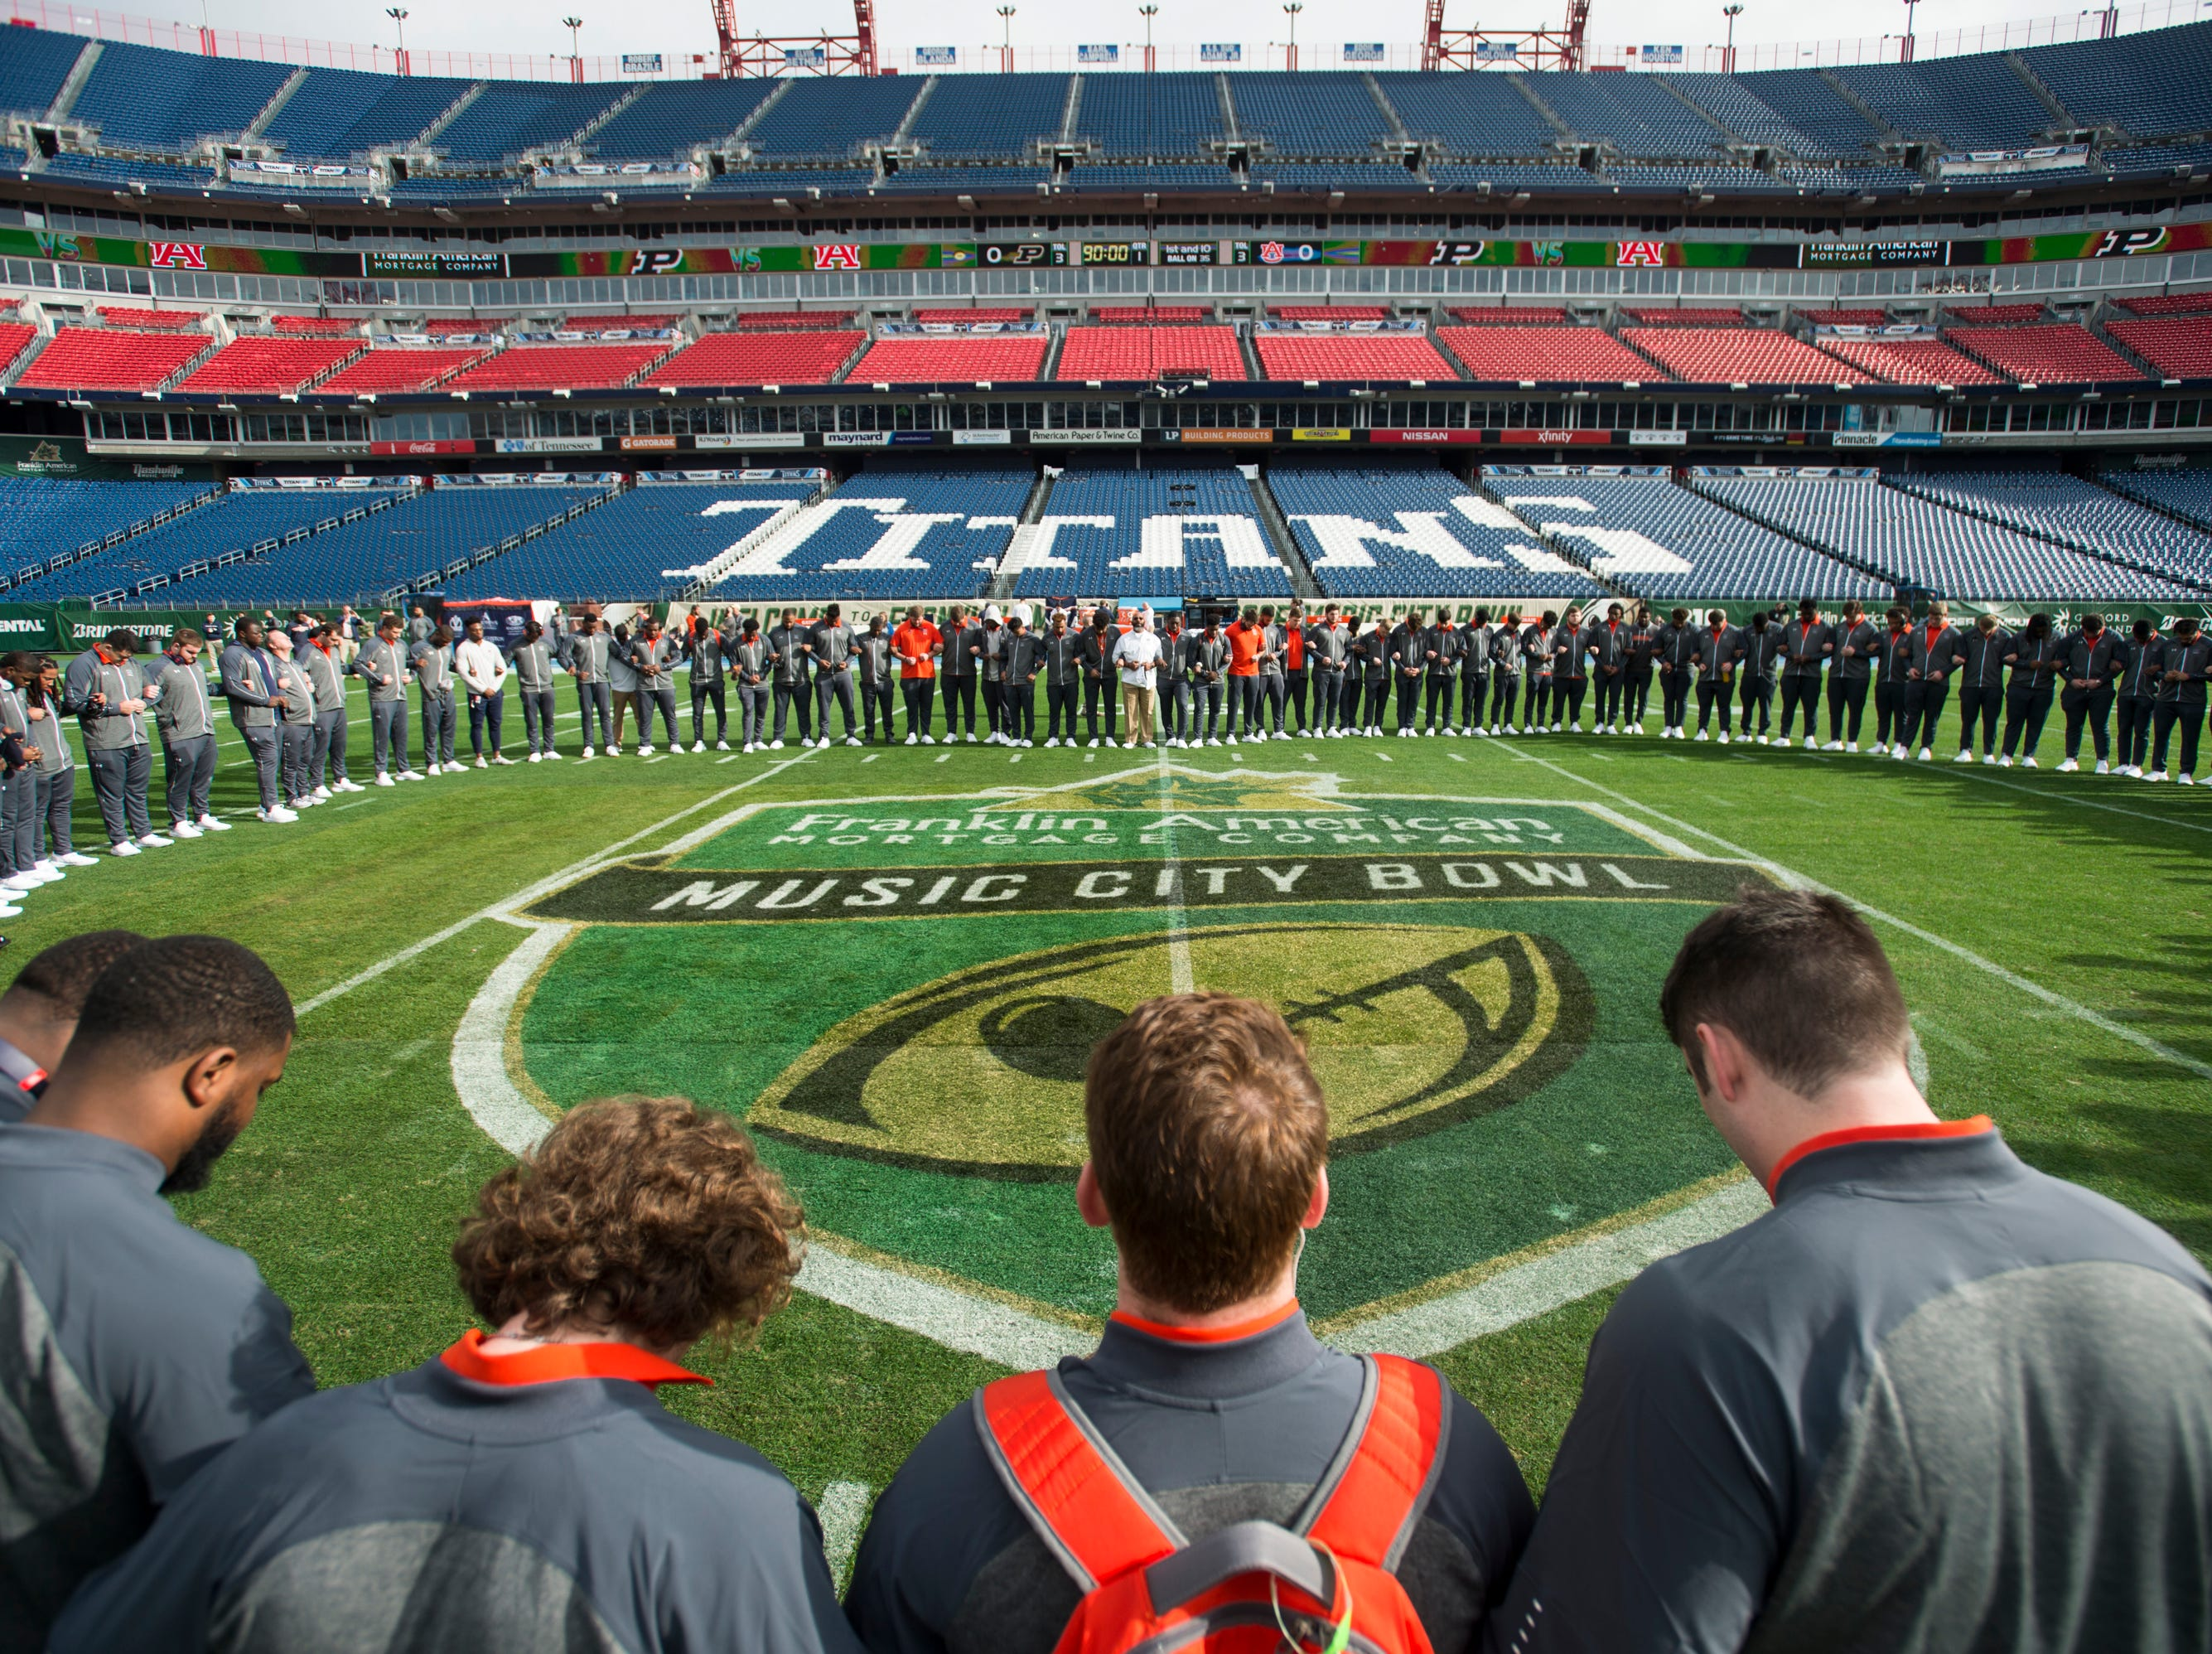 Auburn players pray on the field before taking on Purdue in the Music City Bowl at Nissan Stadium in Nashville, Tenn., on Friday, Dec. 28, 2018.